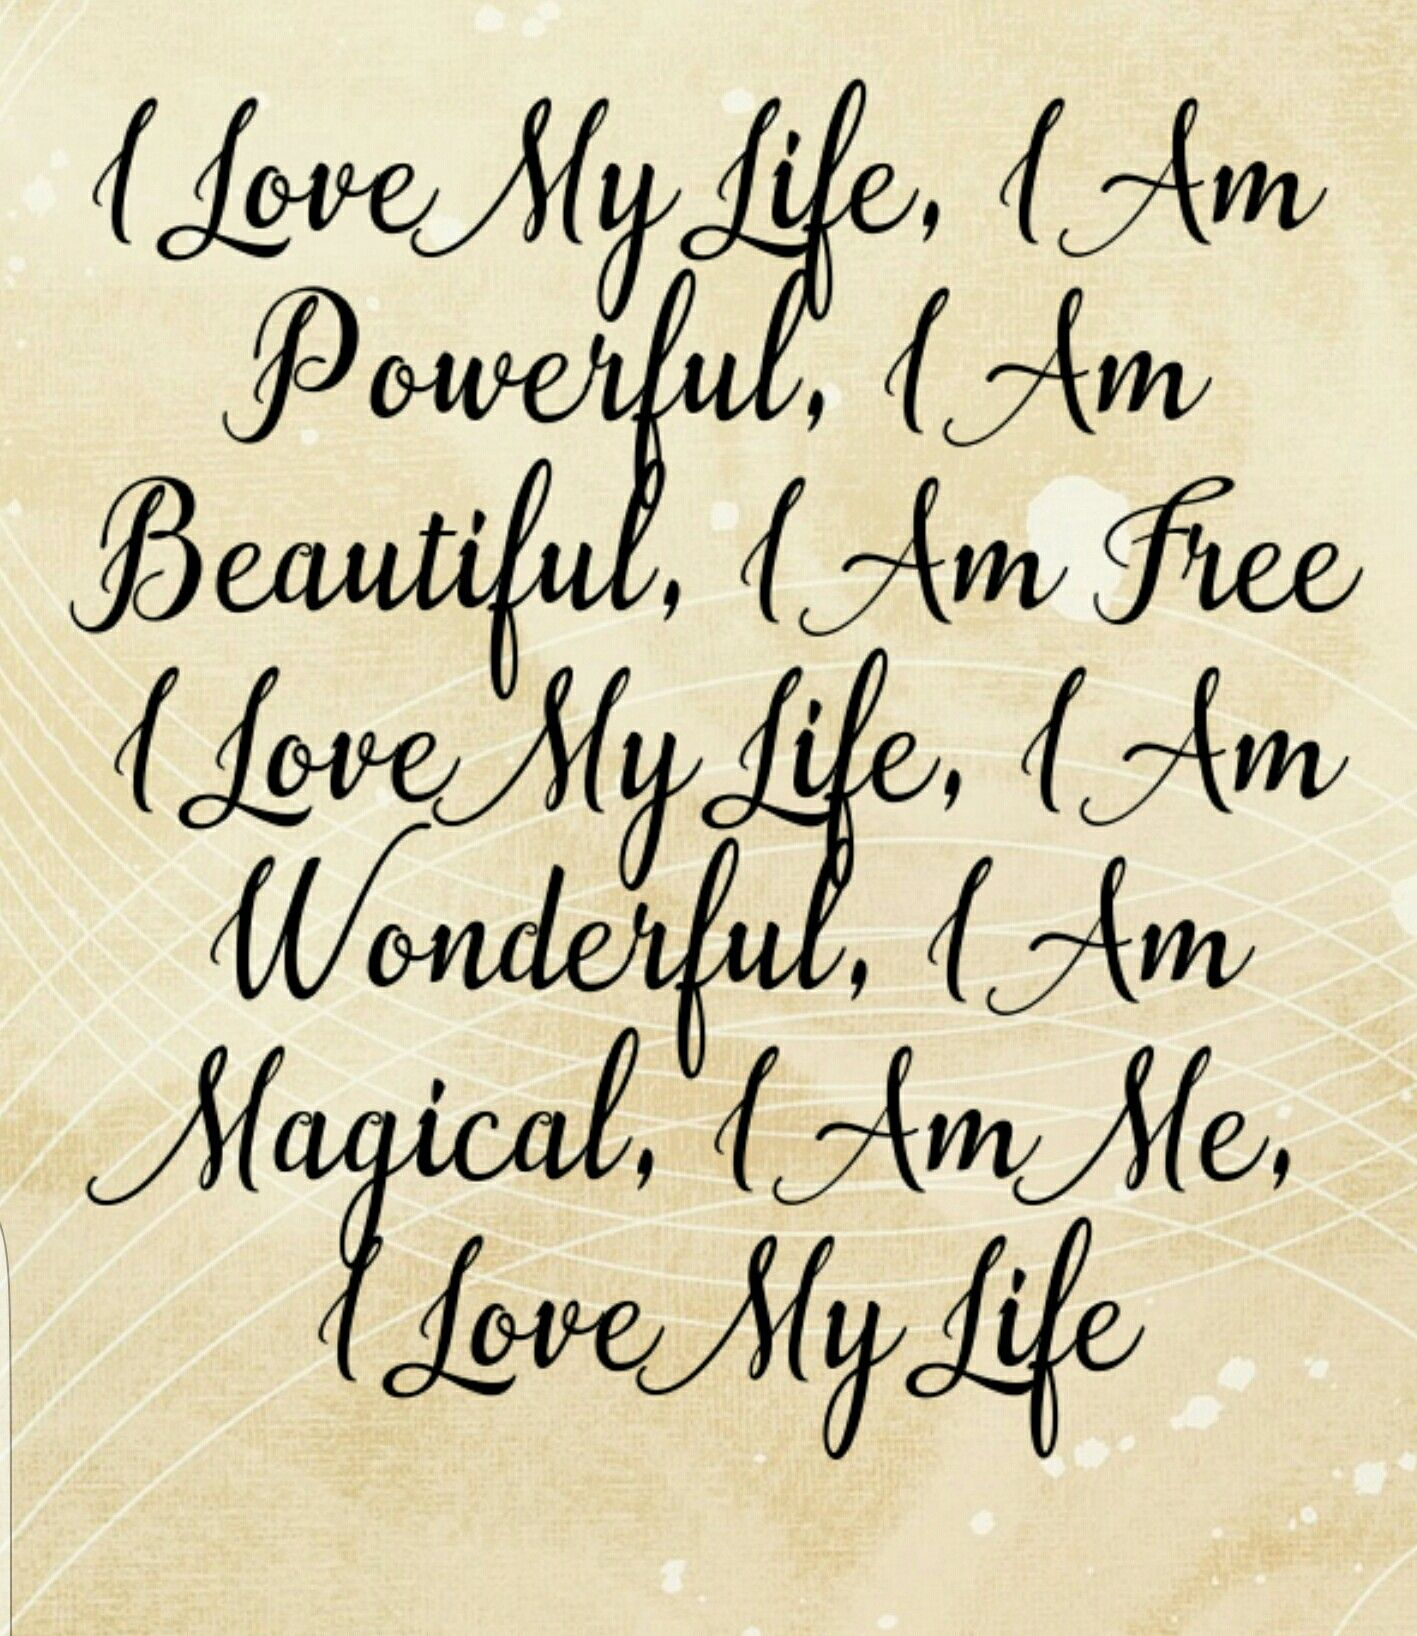 I Love My Life Quotes: I Love My Life * Robbie Williams * Power * Mantra